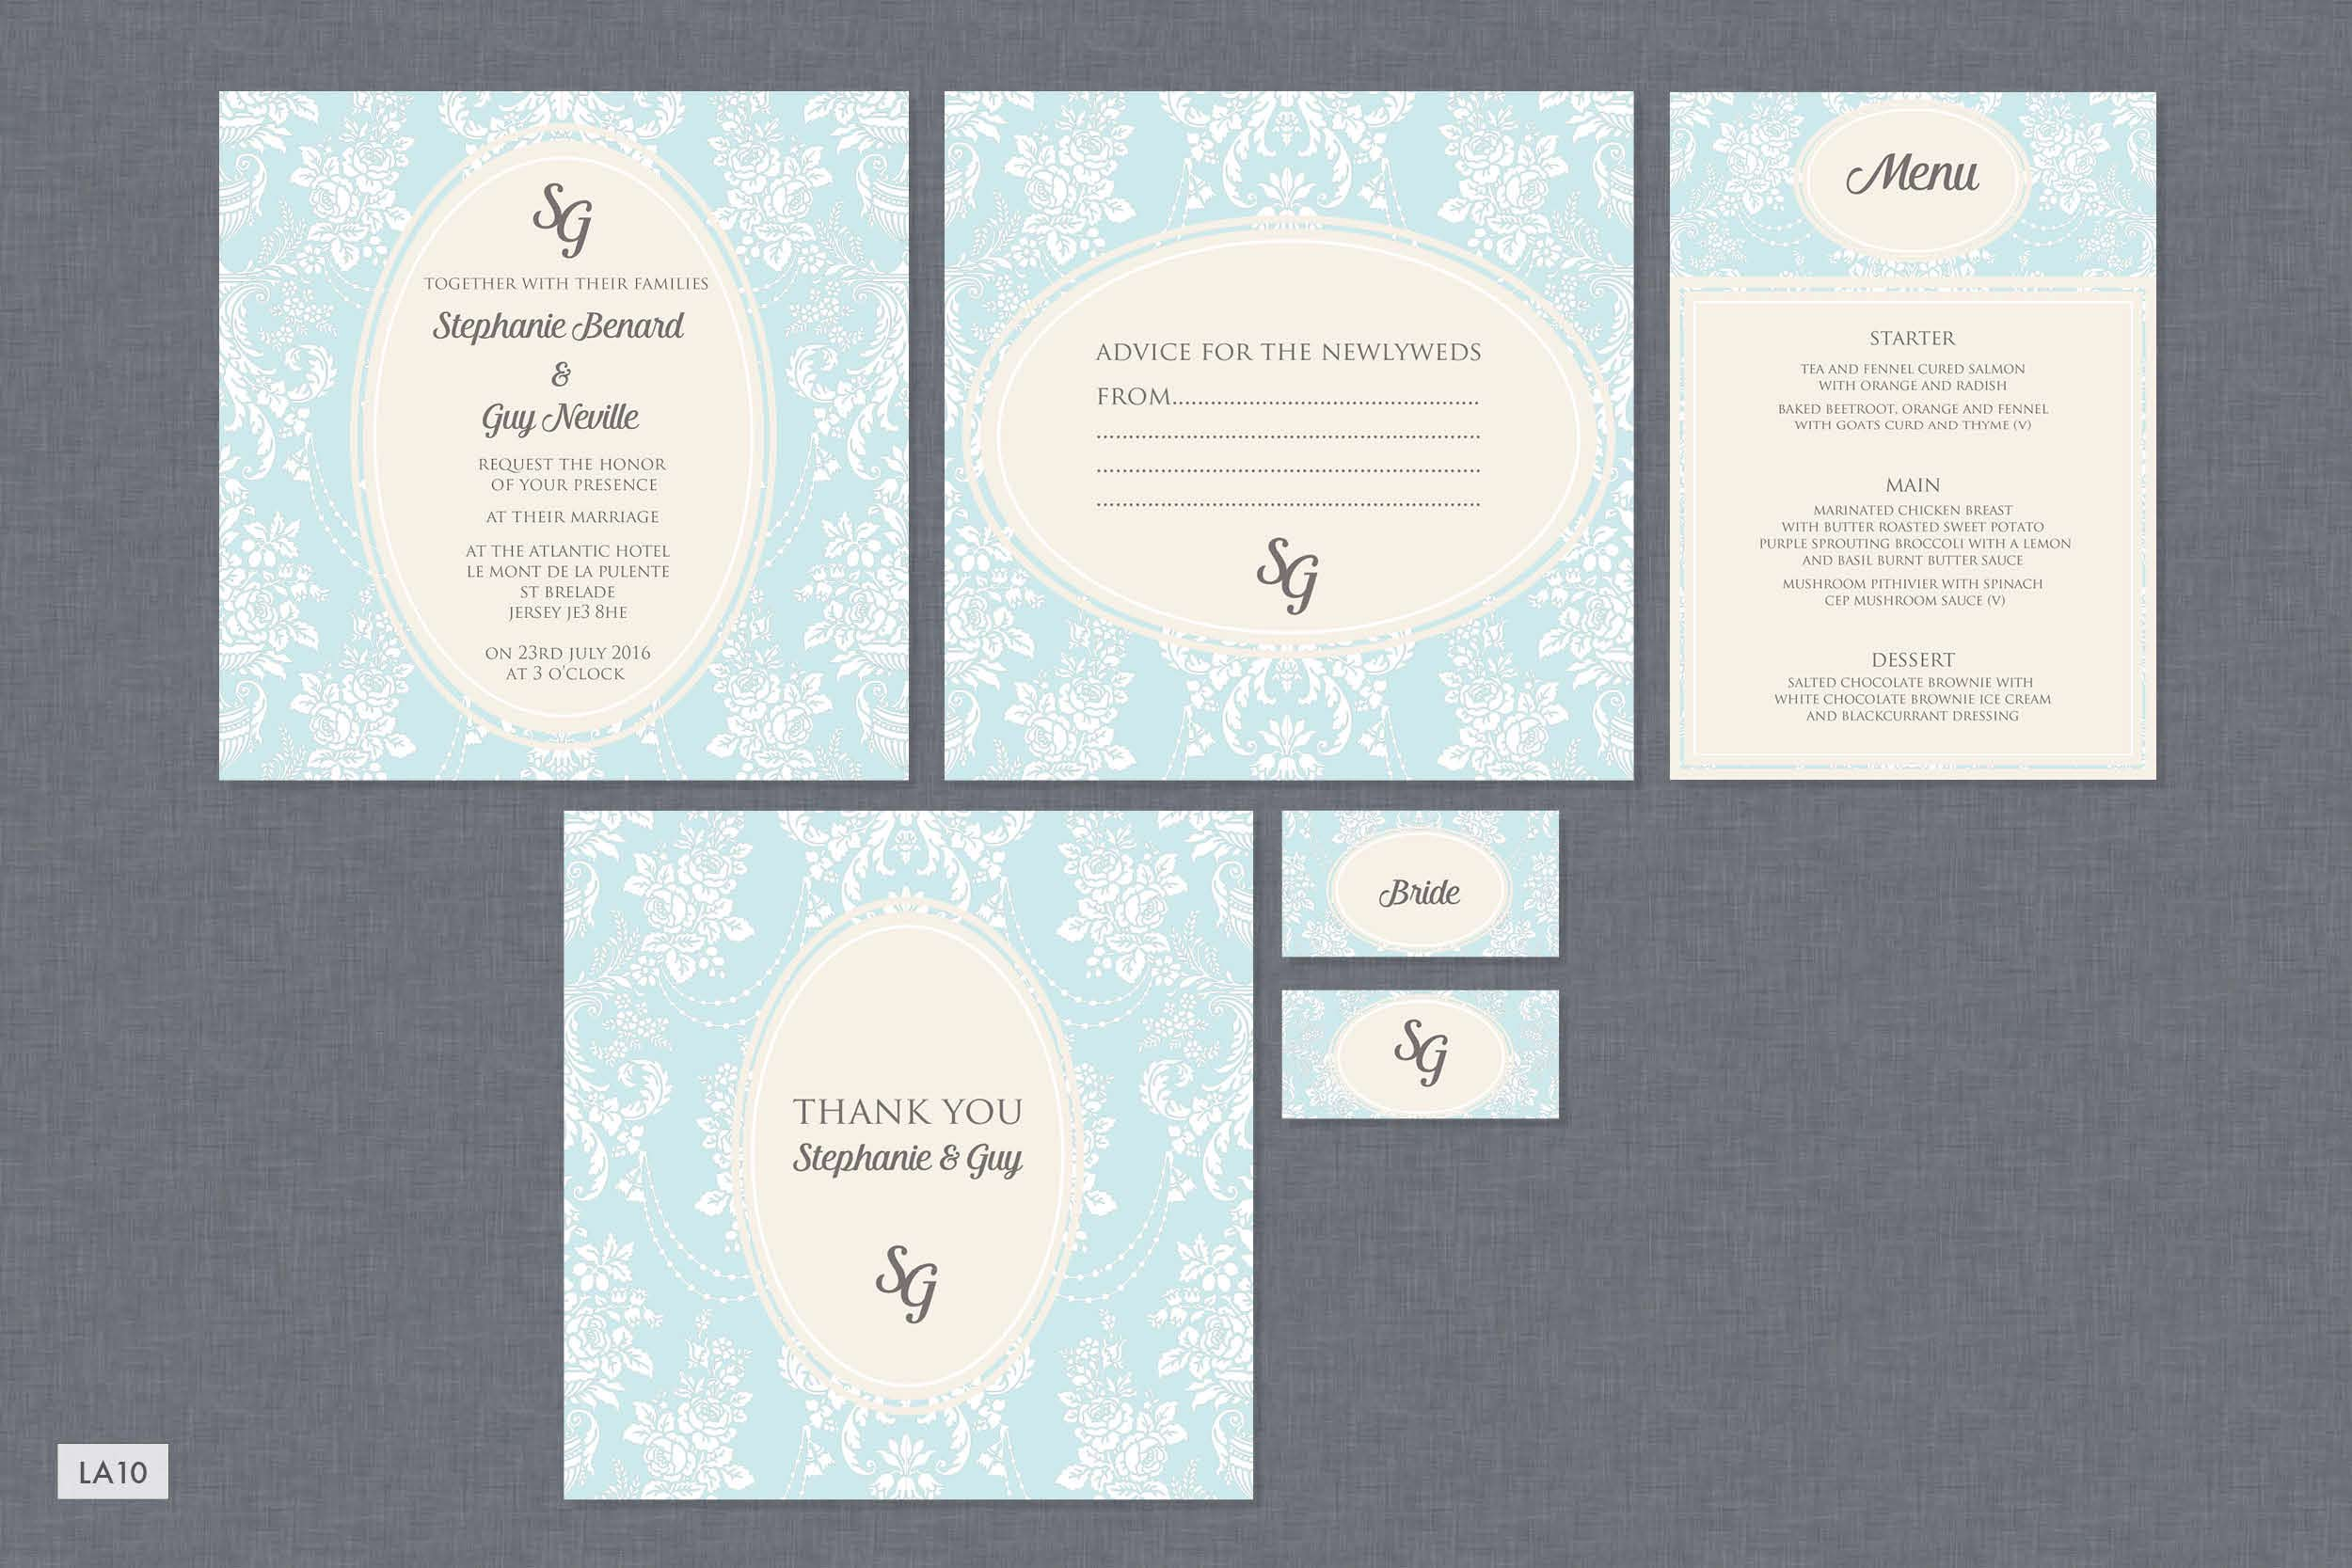 ananya-wedding-stationery-lace34.jpg